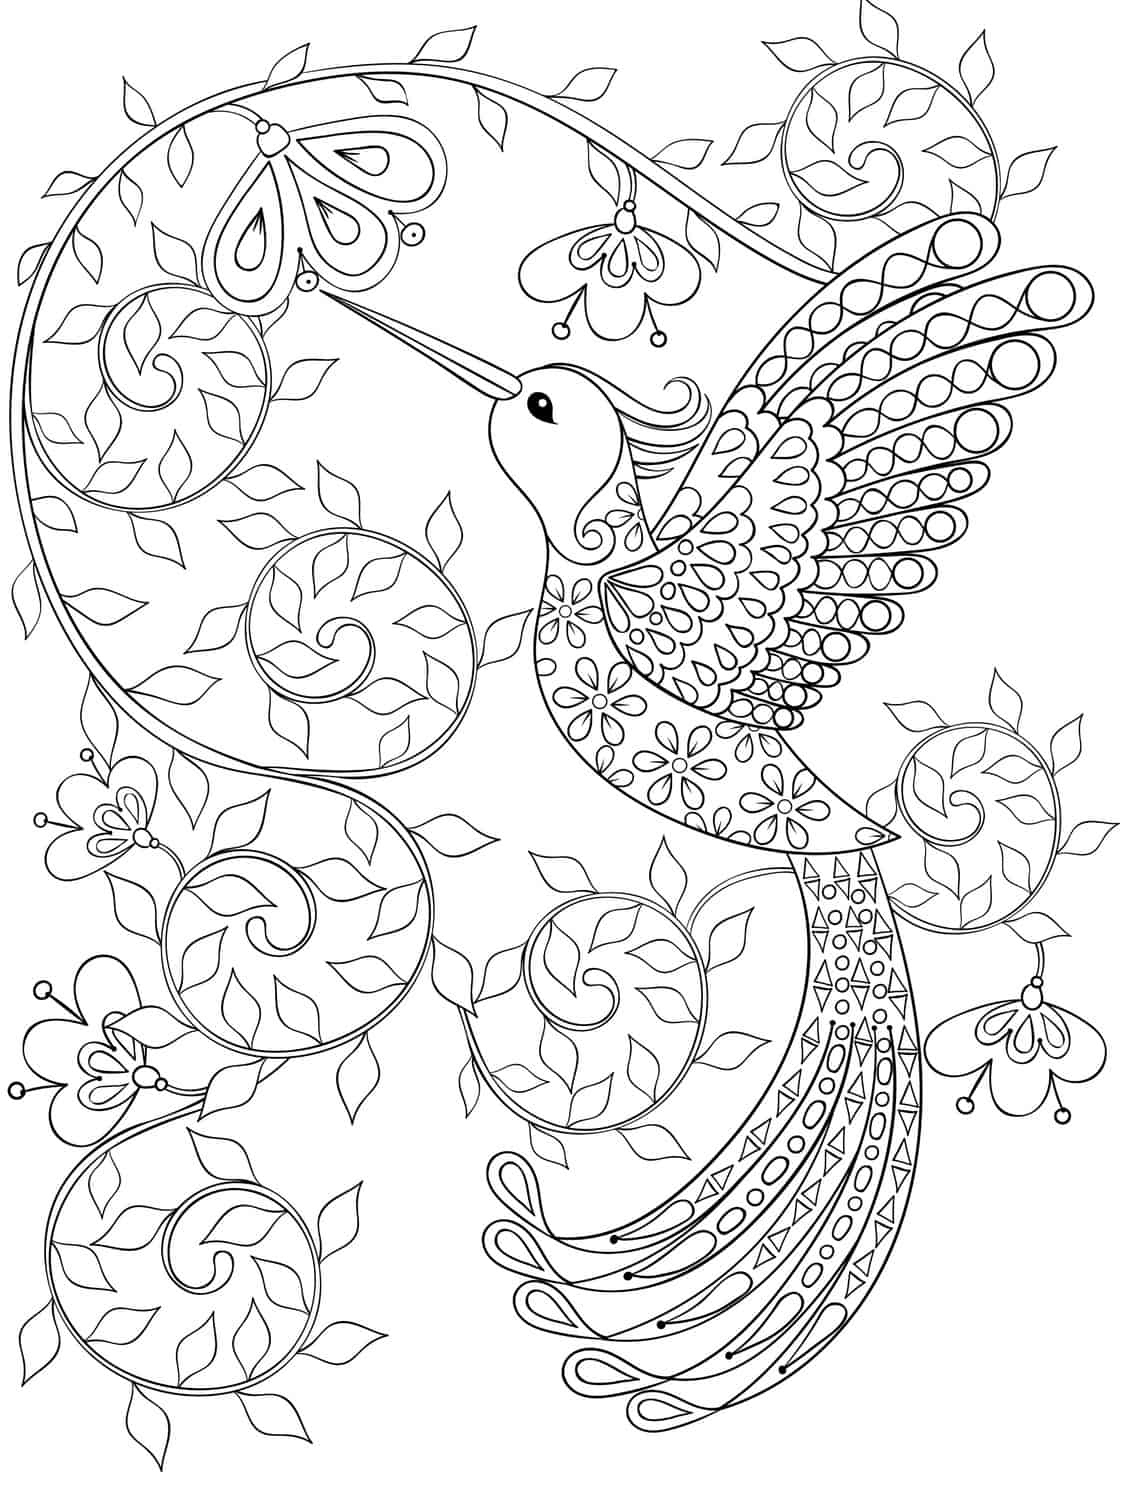 20 Gorgeous Free Printable Adult Coloring Pages Page 11 Colouring In Pages For Adults